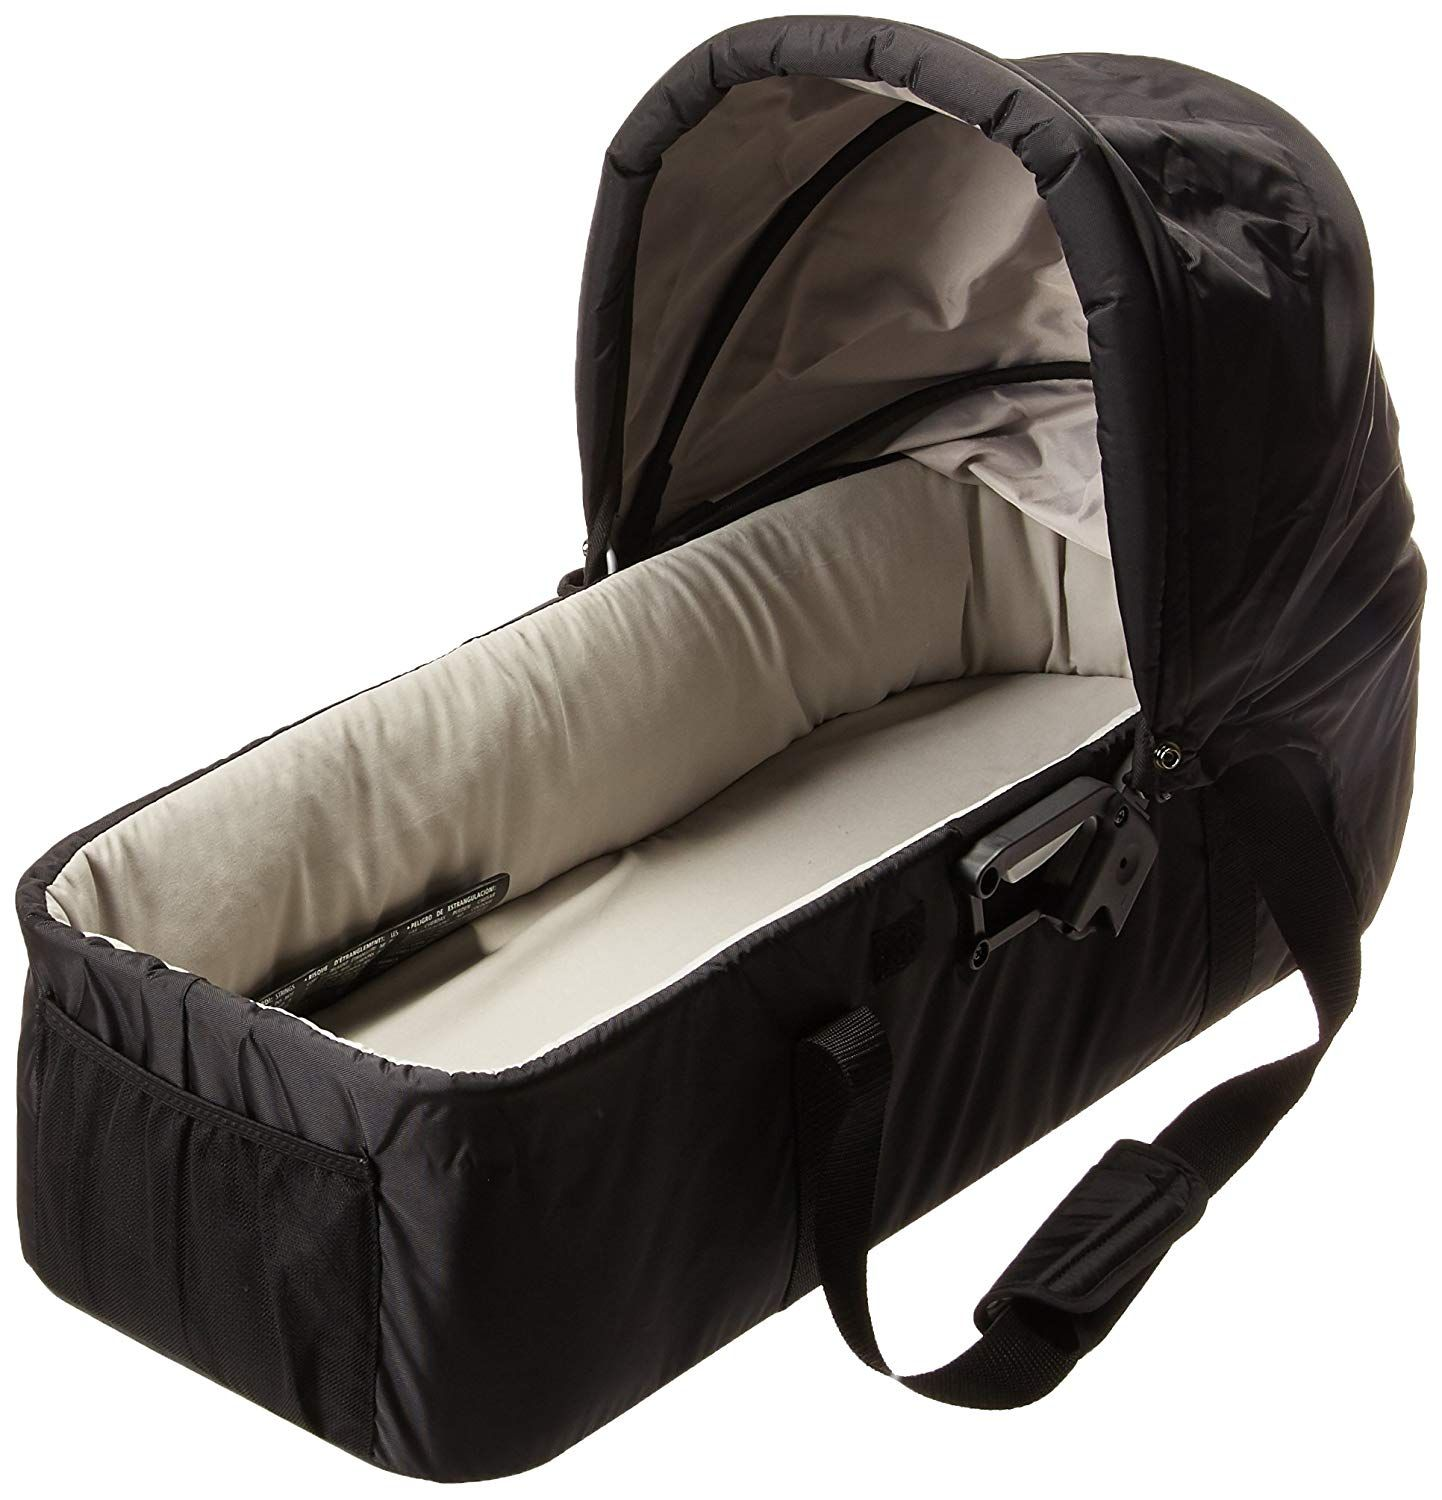 8a7563faf6 Baby Jogger Compact Carrycot Black: Amazon.co.uk: Baby £99.99 | Baby ...